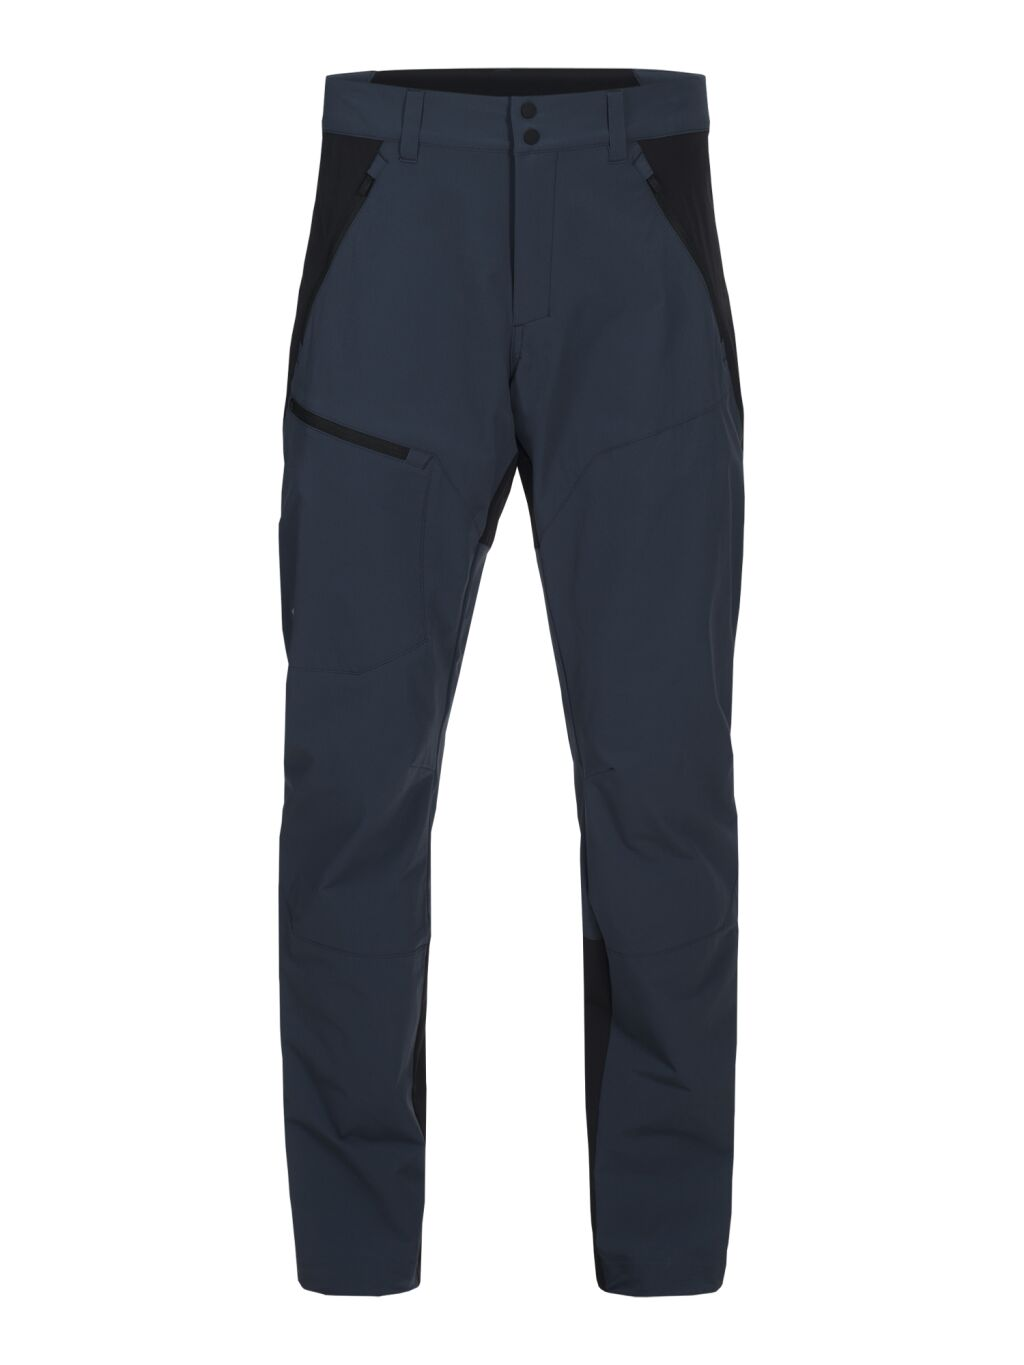 Peak Performance Light Softshell Carbon Pants